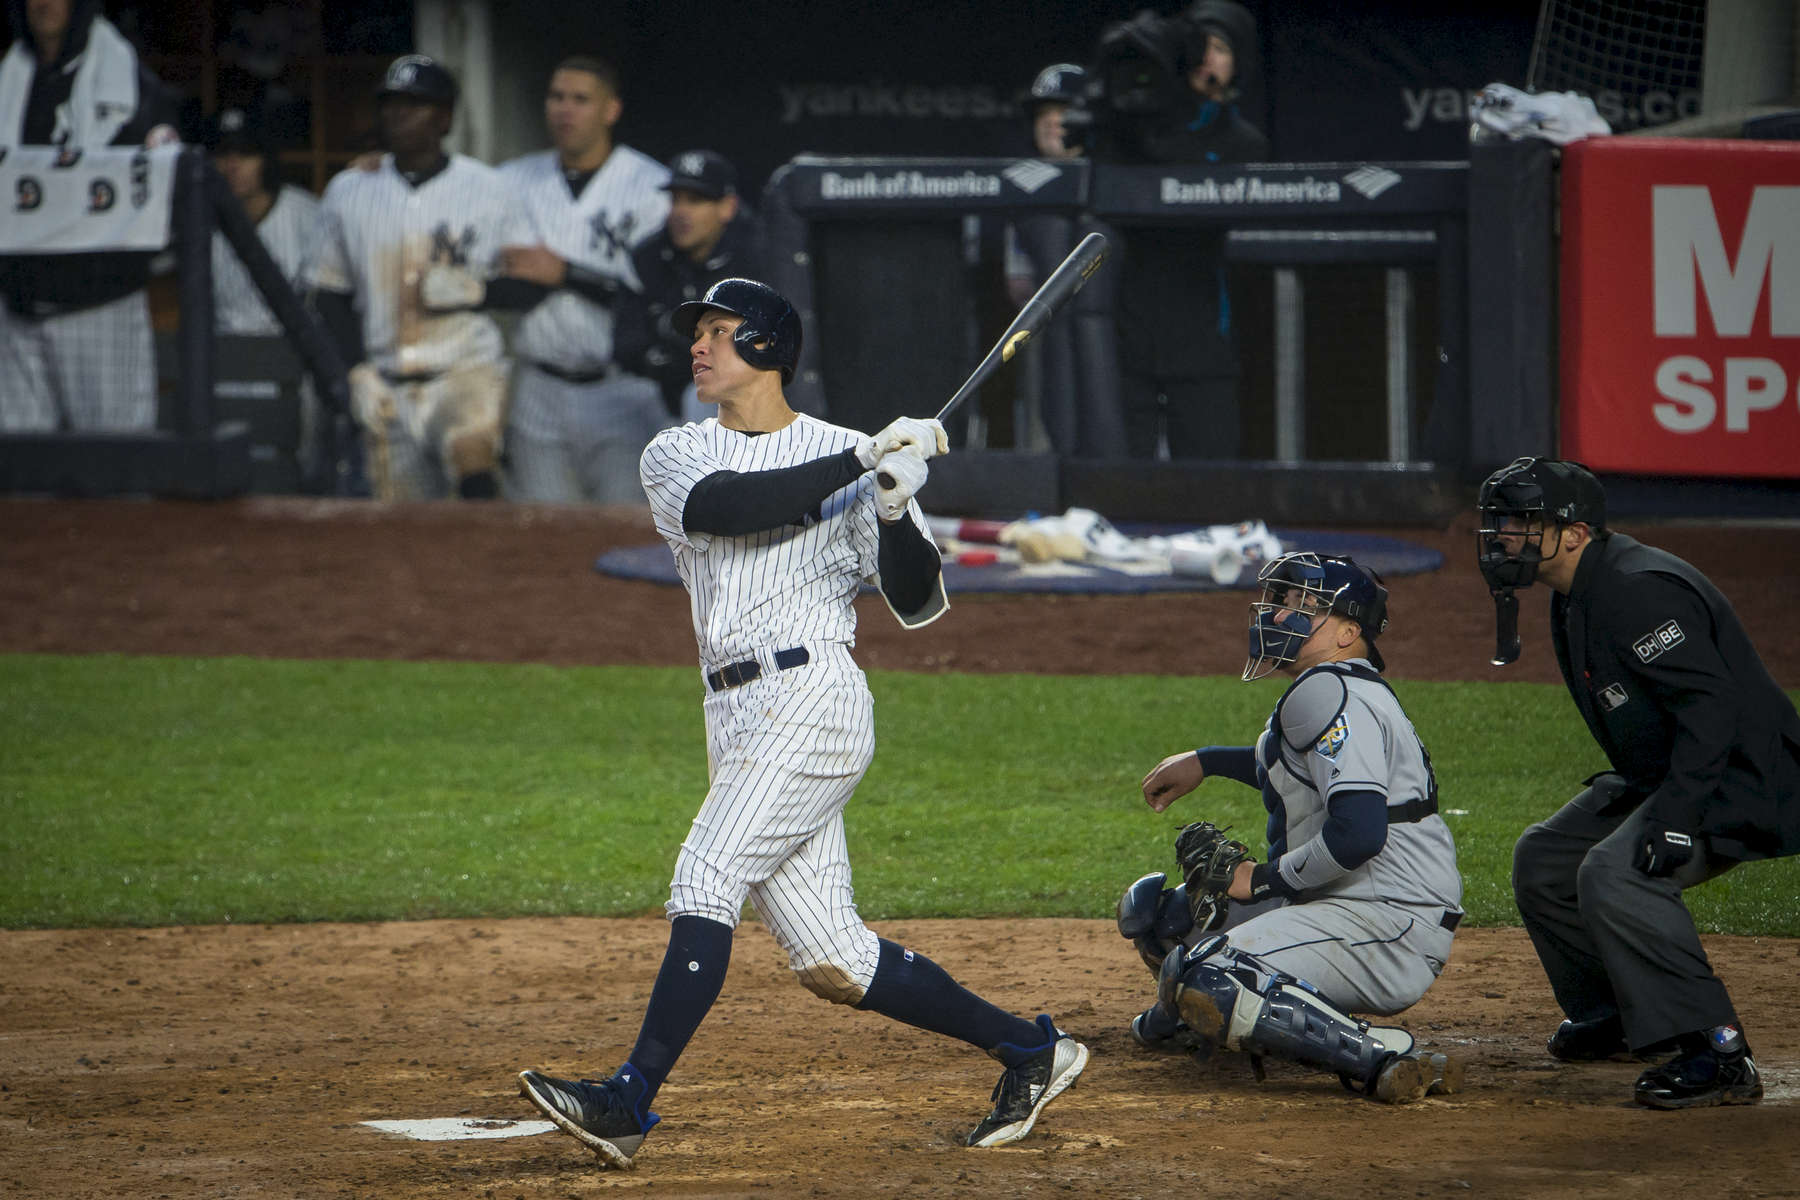 New York Yankees outfielder Aaron Judge hits the ball for another base hit as New York Yankees plays against the Tampa Bay Rays at the opening day at Yankee Stadium located at 1 East 161st Street in the Bronx, New York on Tuesday, April 3, 2018. (Anthony DelMundo/New York Daily News)